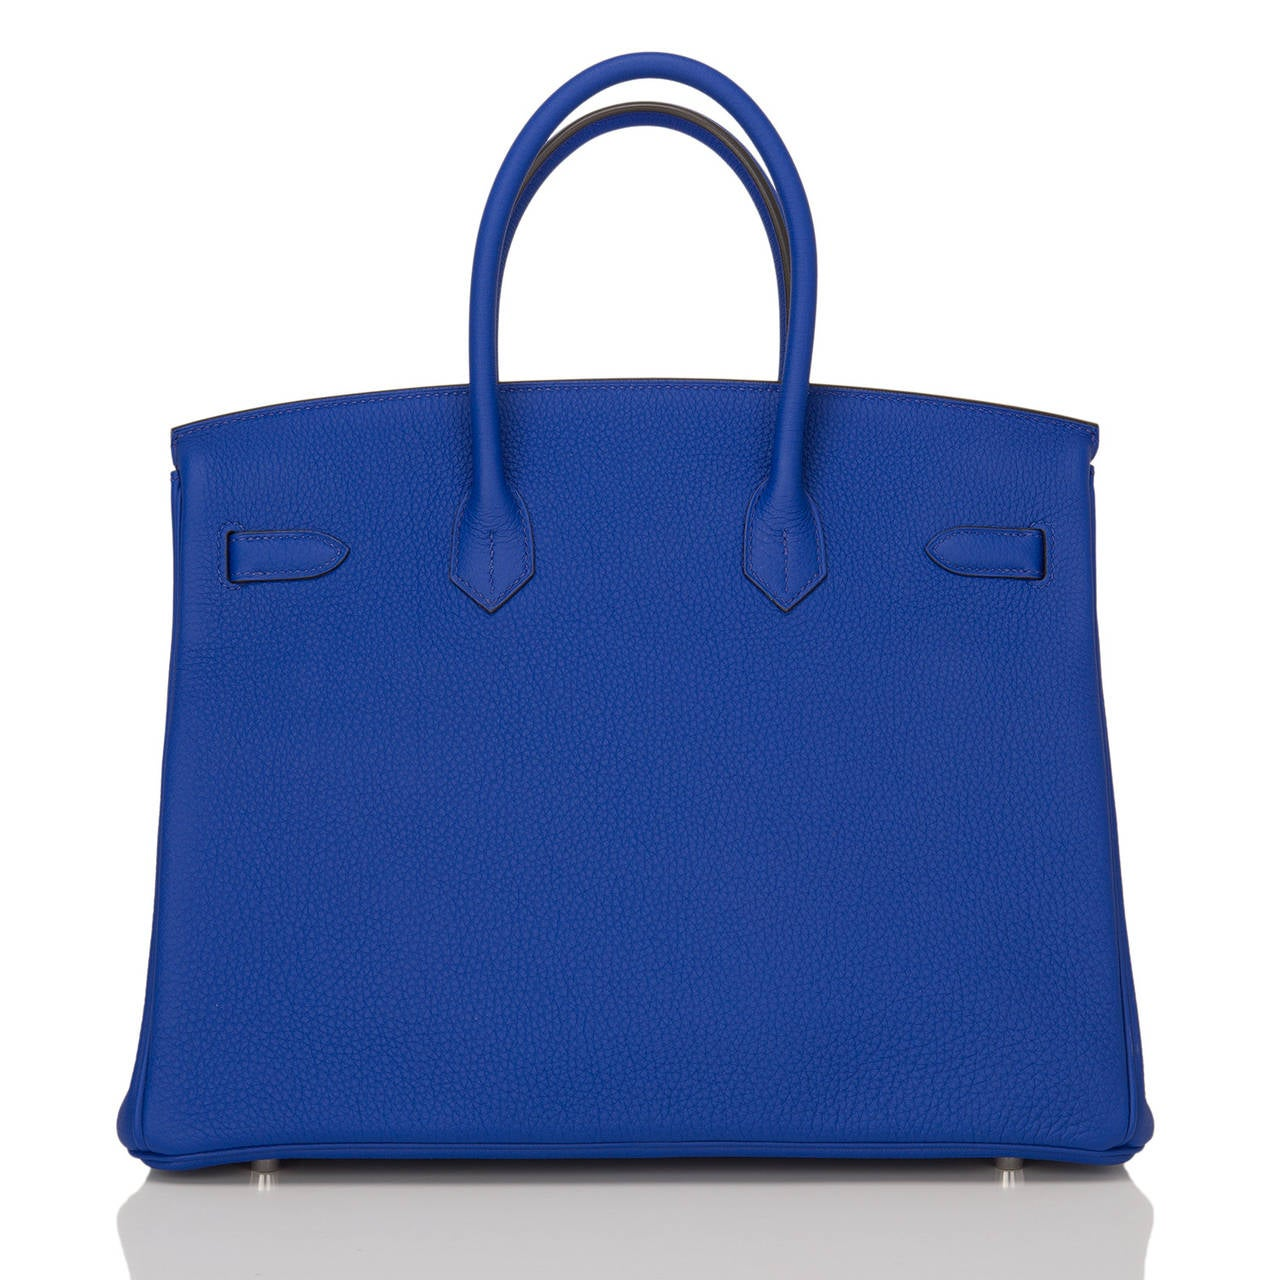 Hermes Blue Electric Togo Birkin 35cm In New Never_worn Condition For Sale In New York, NY